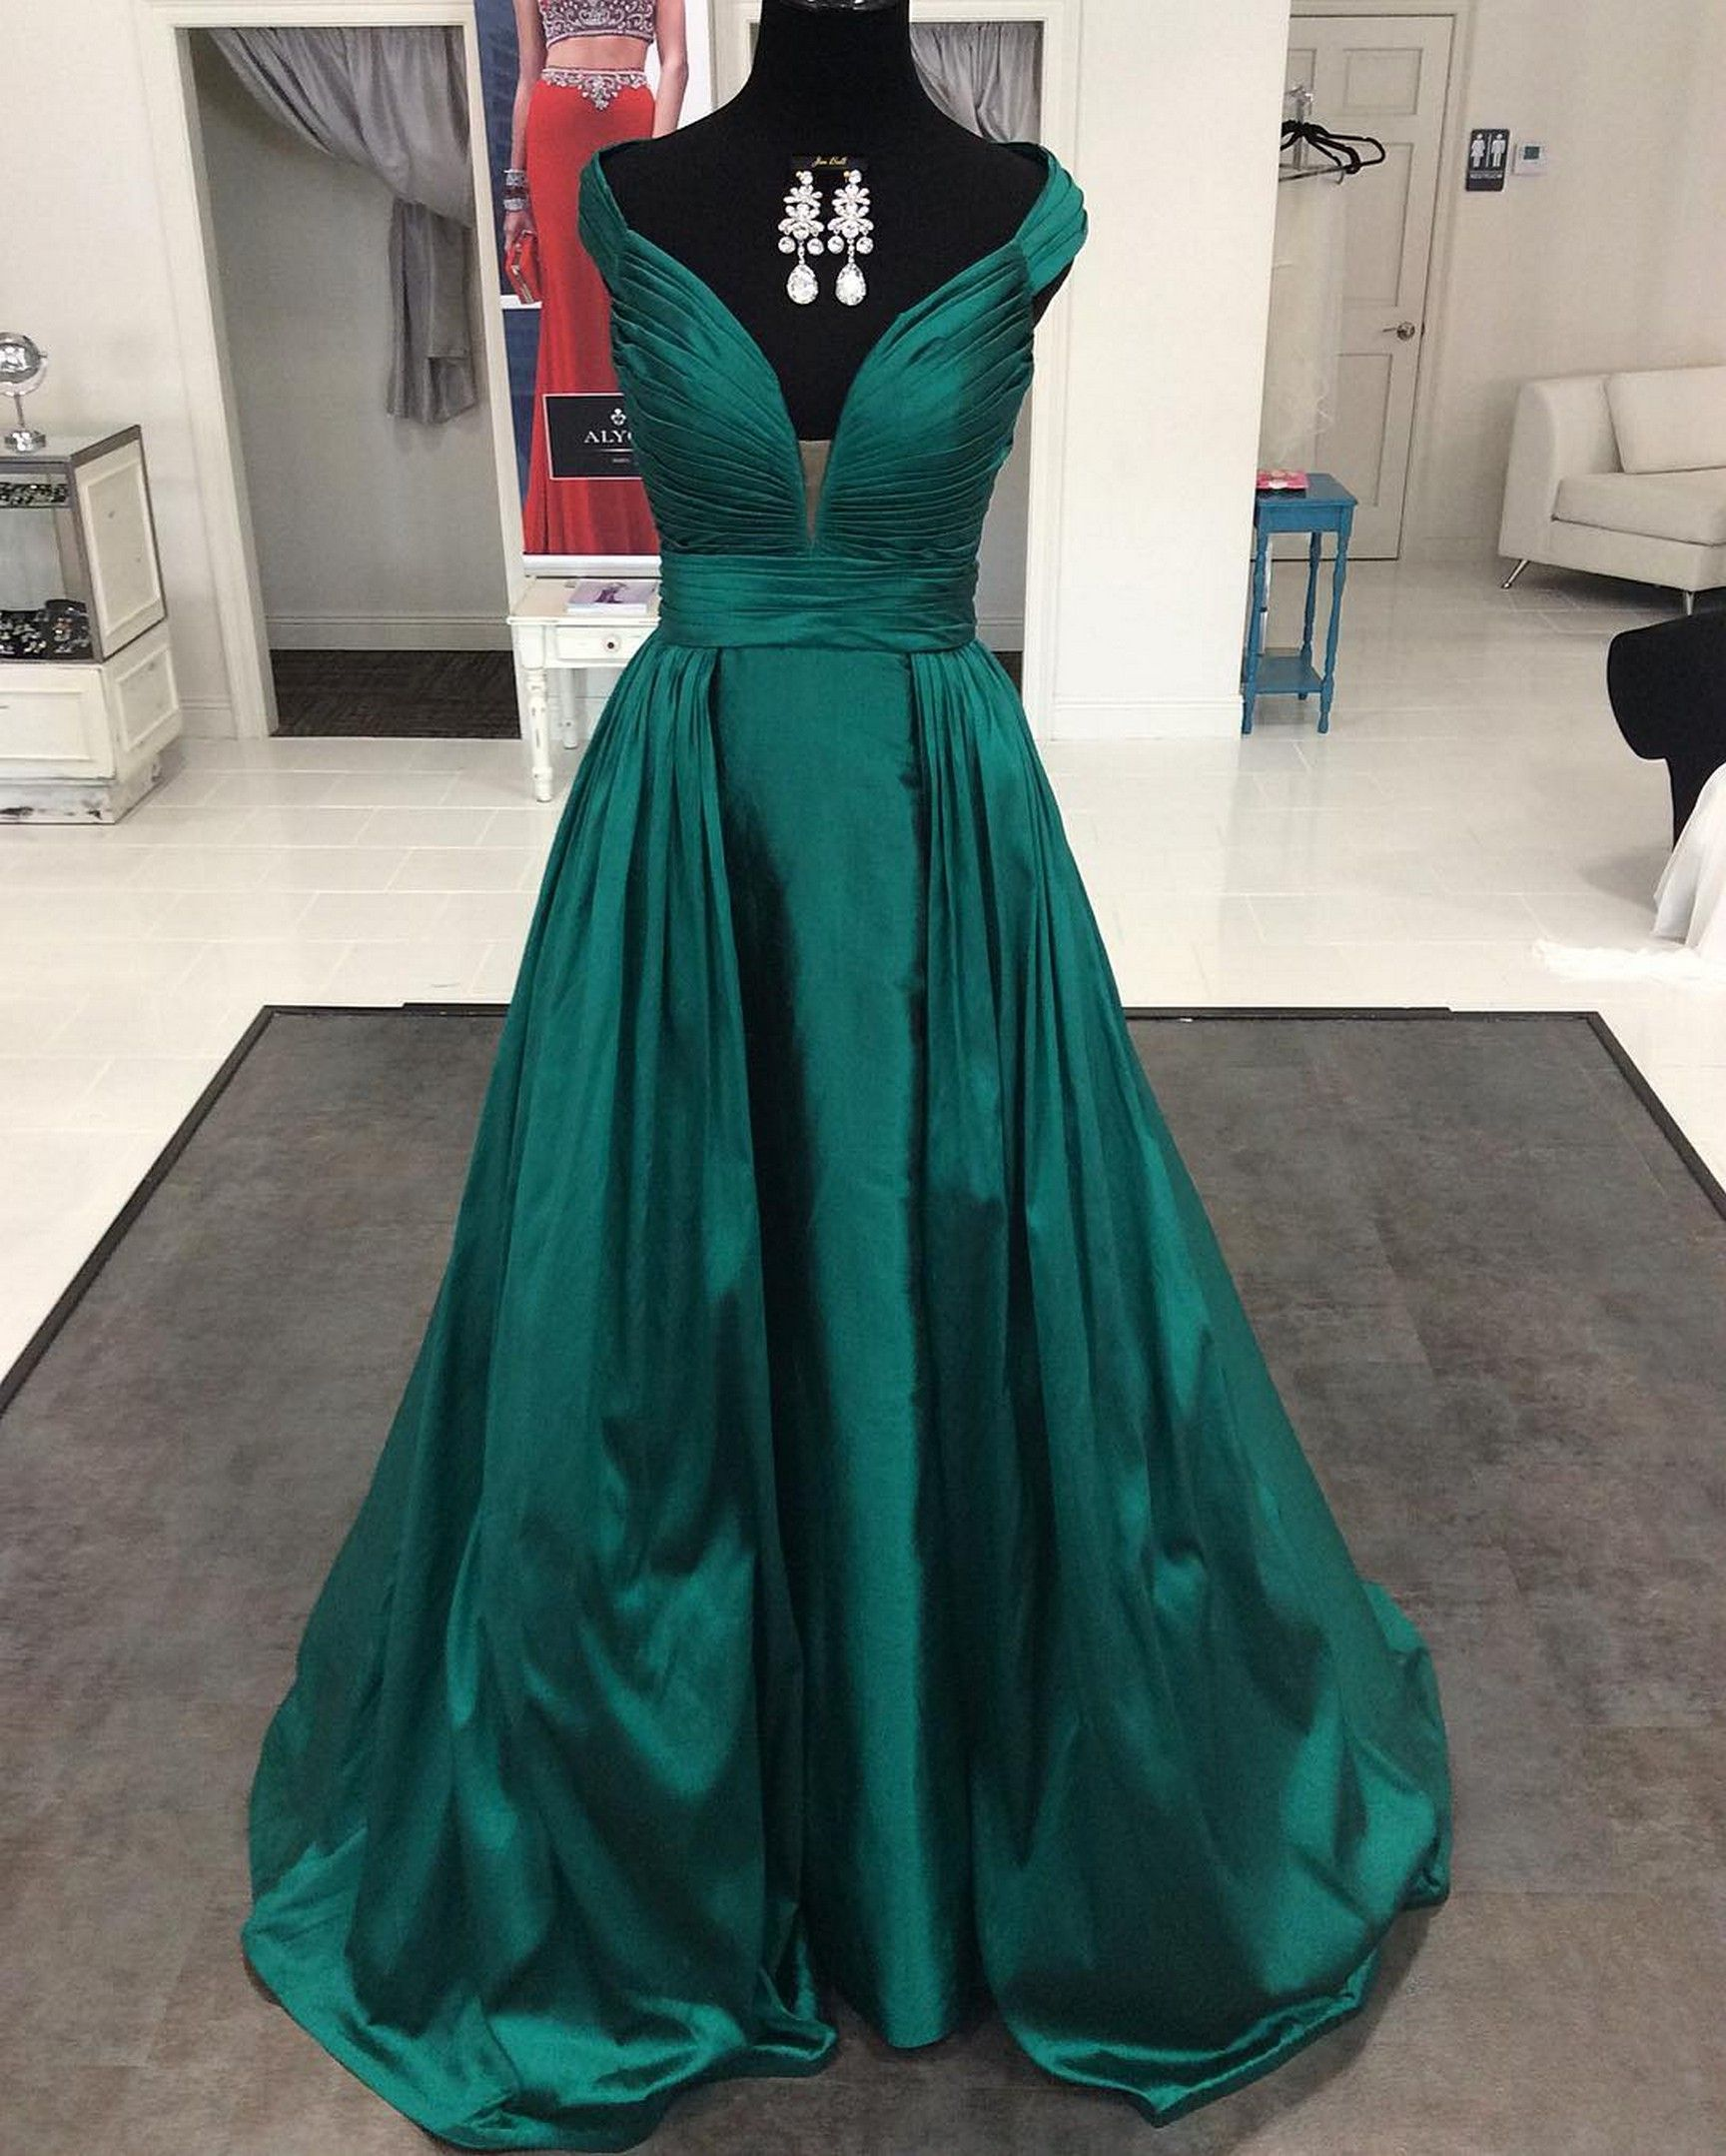 30 Adorable EVening Gowns for Your Party | Dresses for Women ...